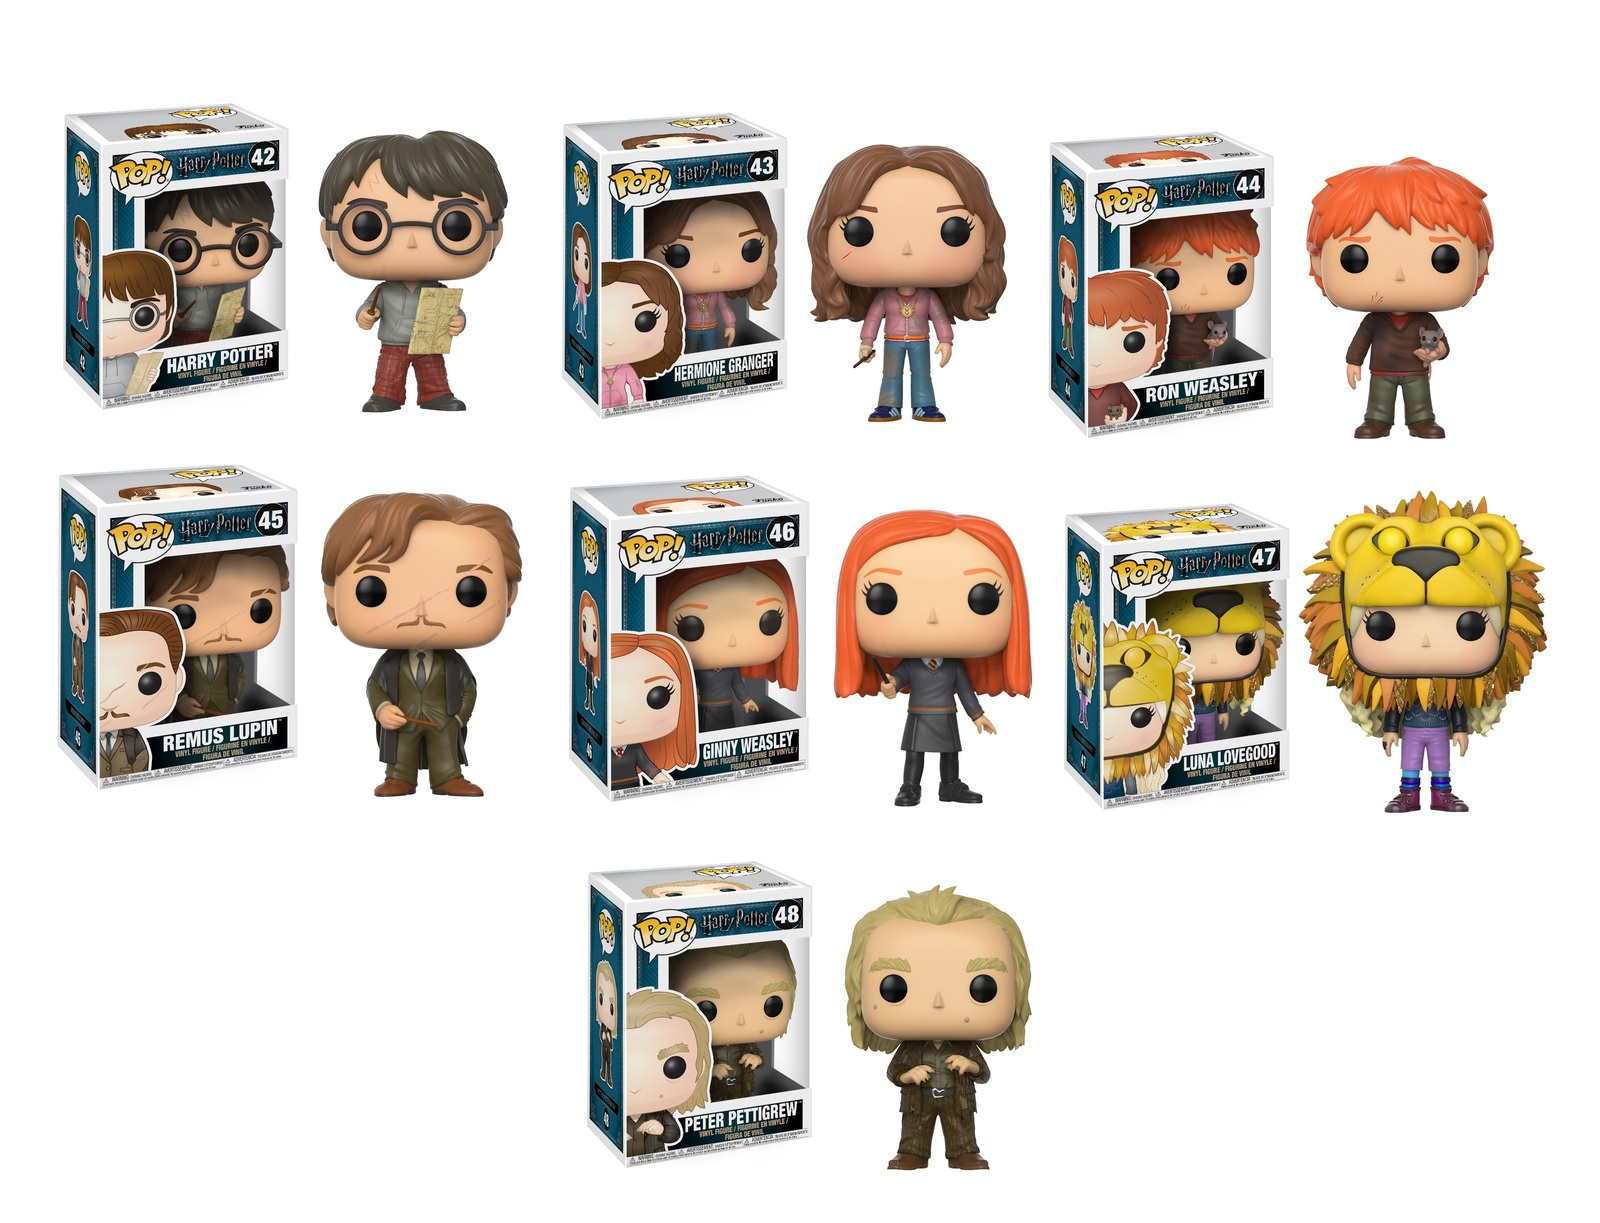 Harry Potter Wave 4 - Pop! Vinyl Bundle image